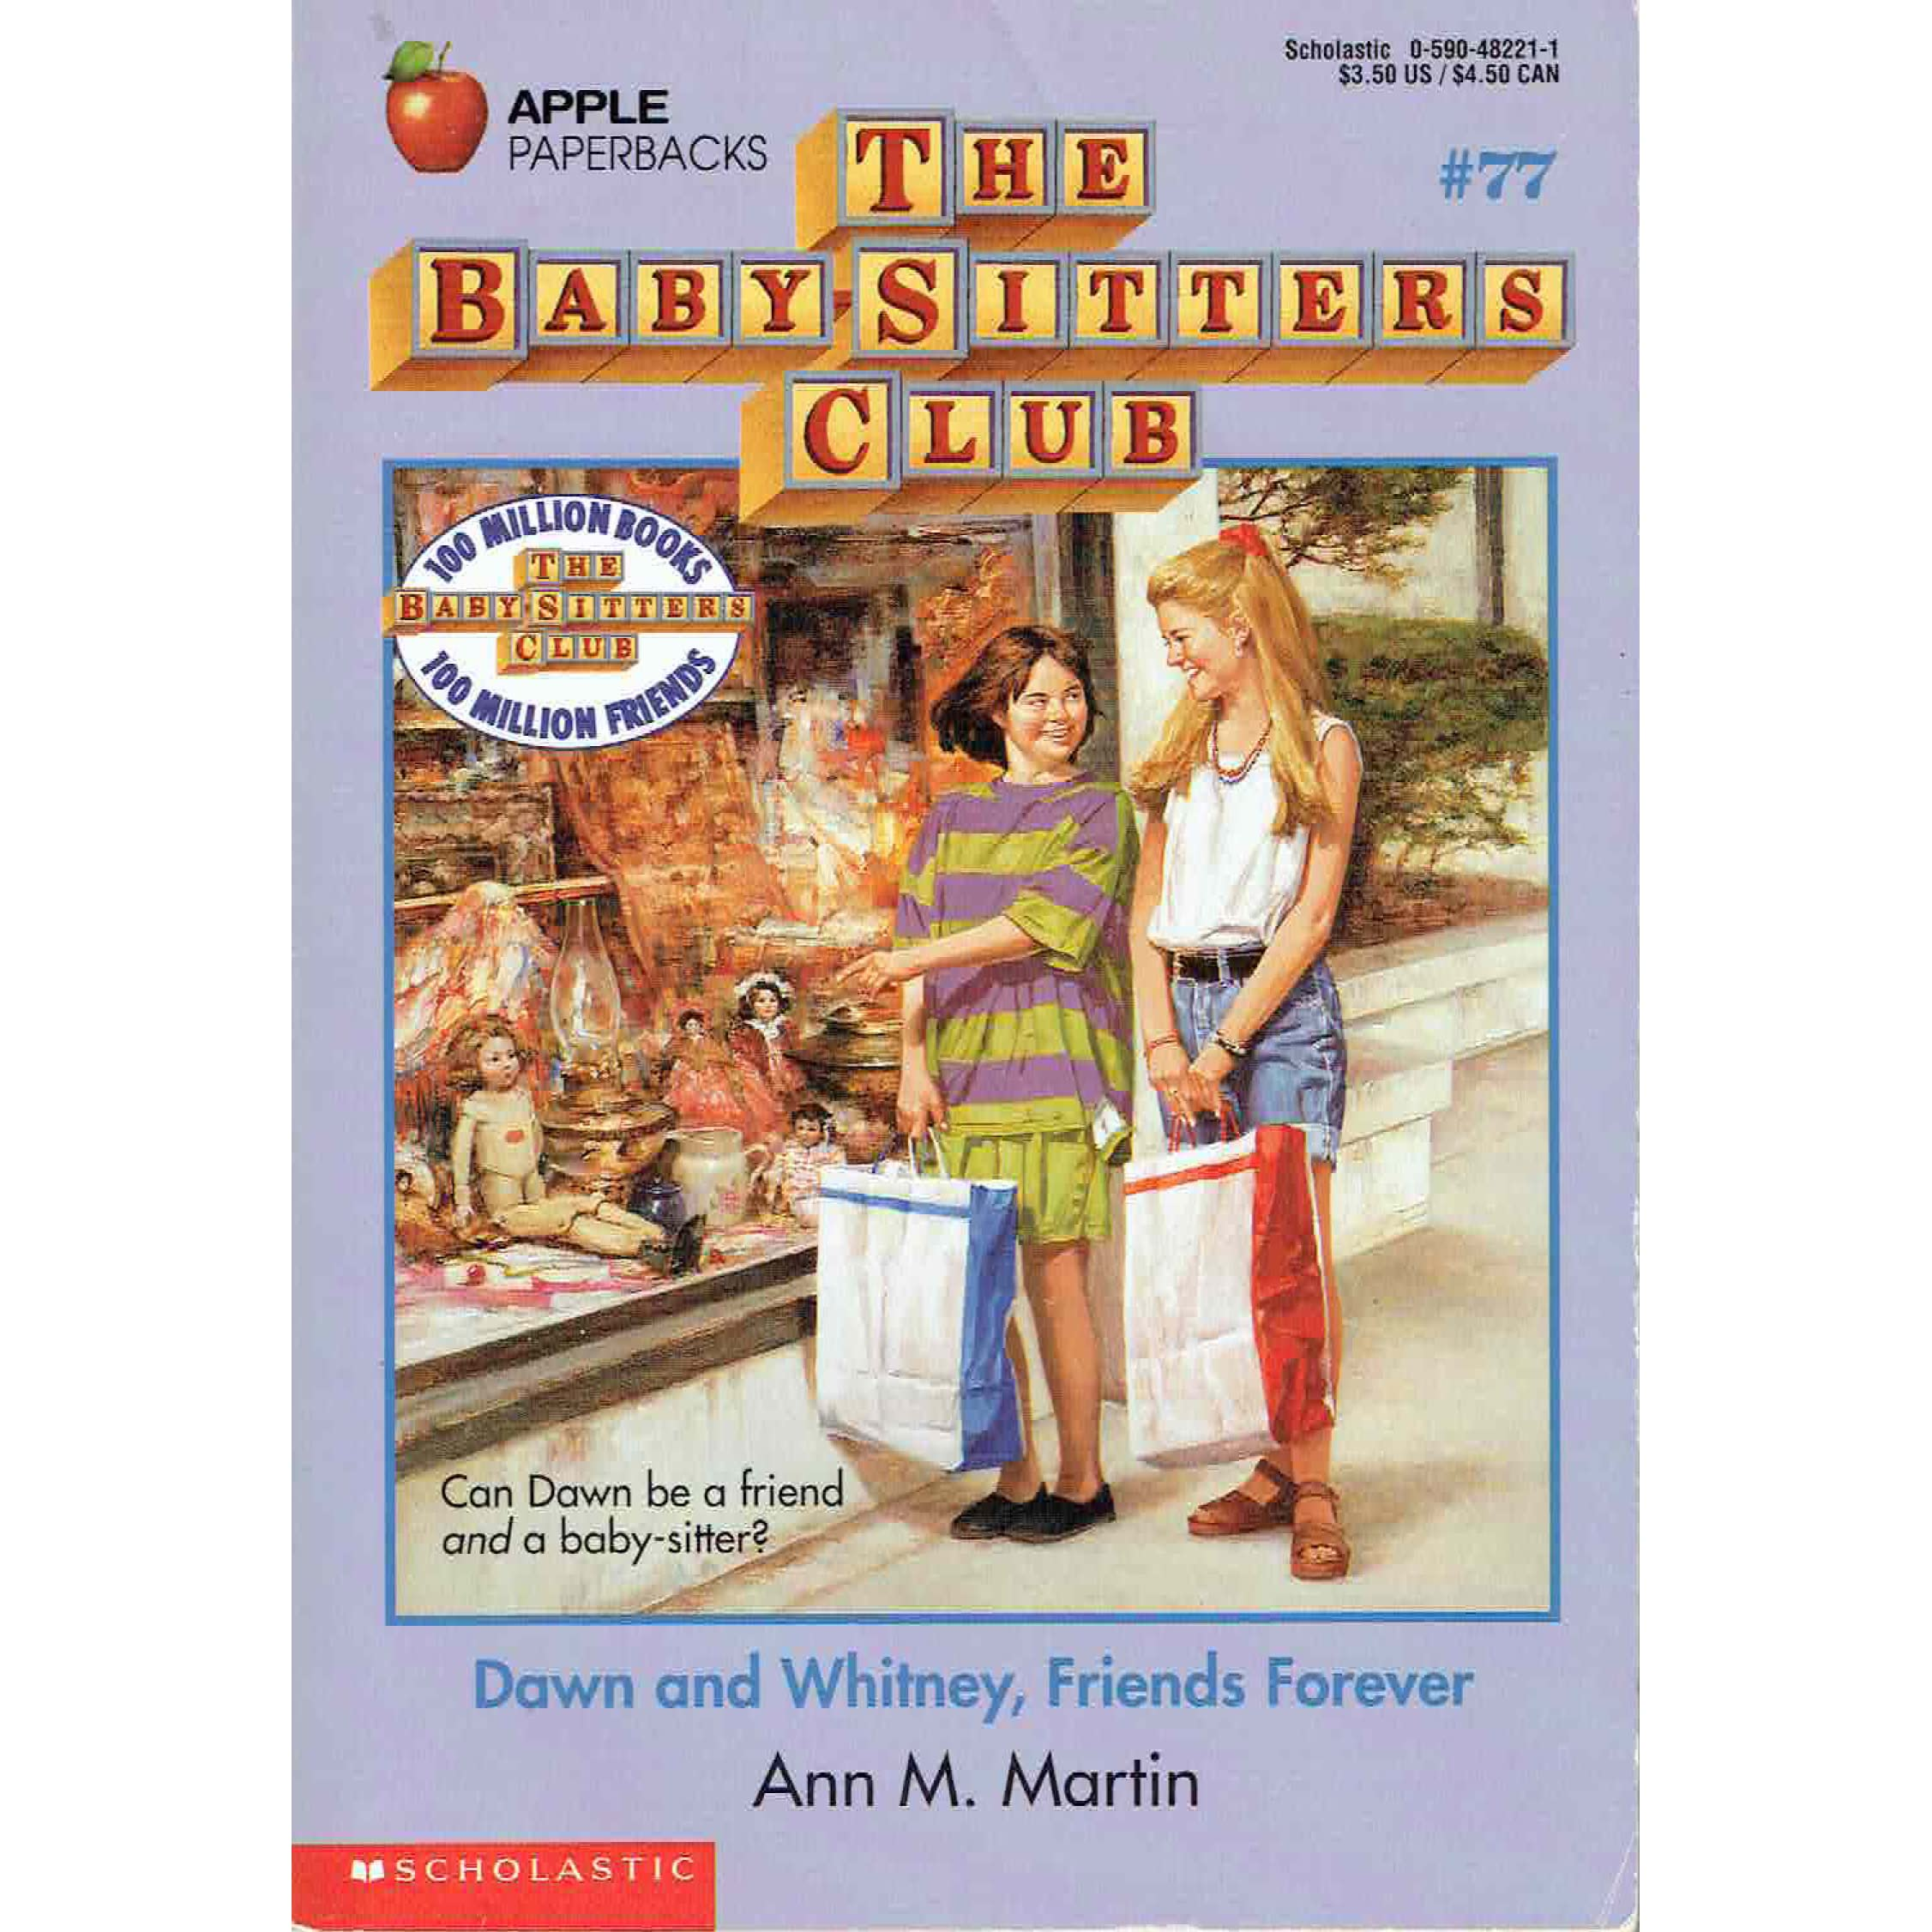 dawn and whitney friends forever the baby sitters club by dawn and whitney friends forever the baby sitters club 77 by ann m martin reviews discussion bookclubs lists